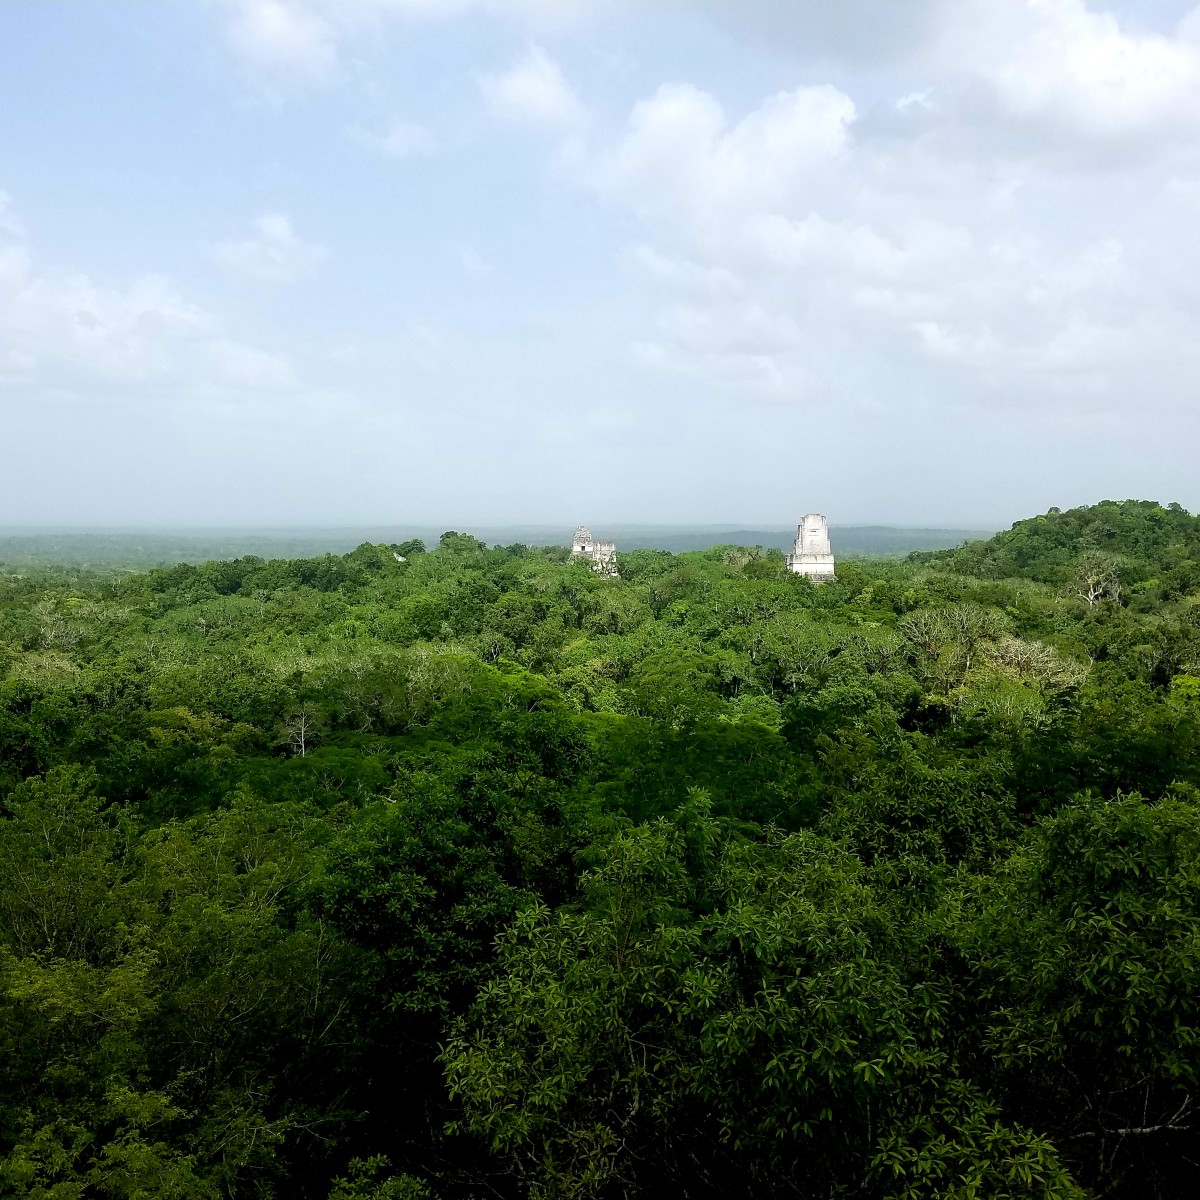 The various temples peeking out through the jungle. Absolutely breathtaking view from atop the tallest temple.